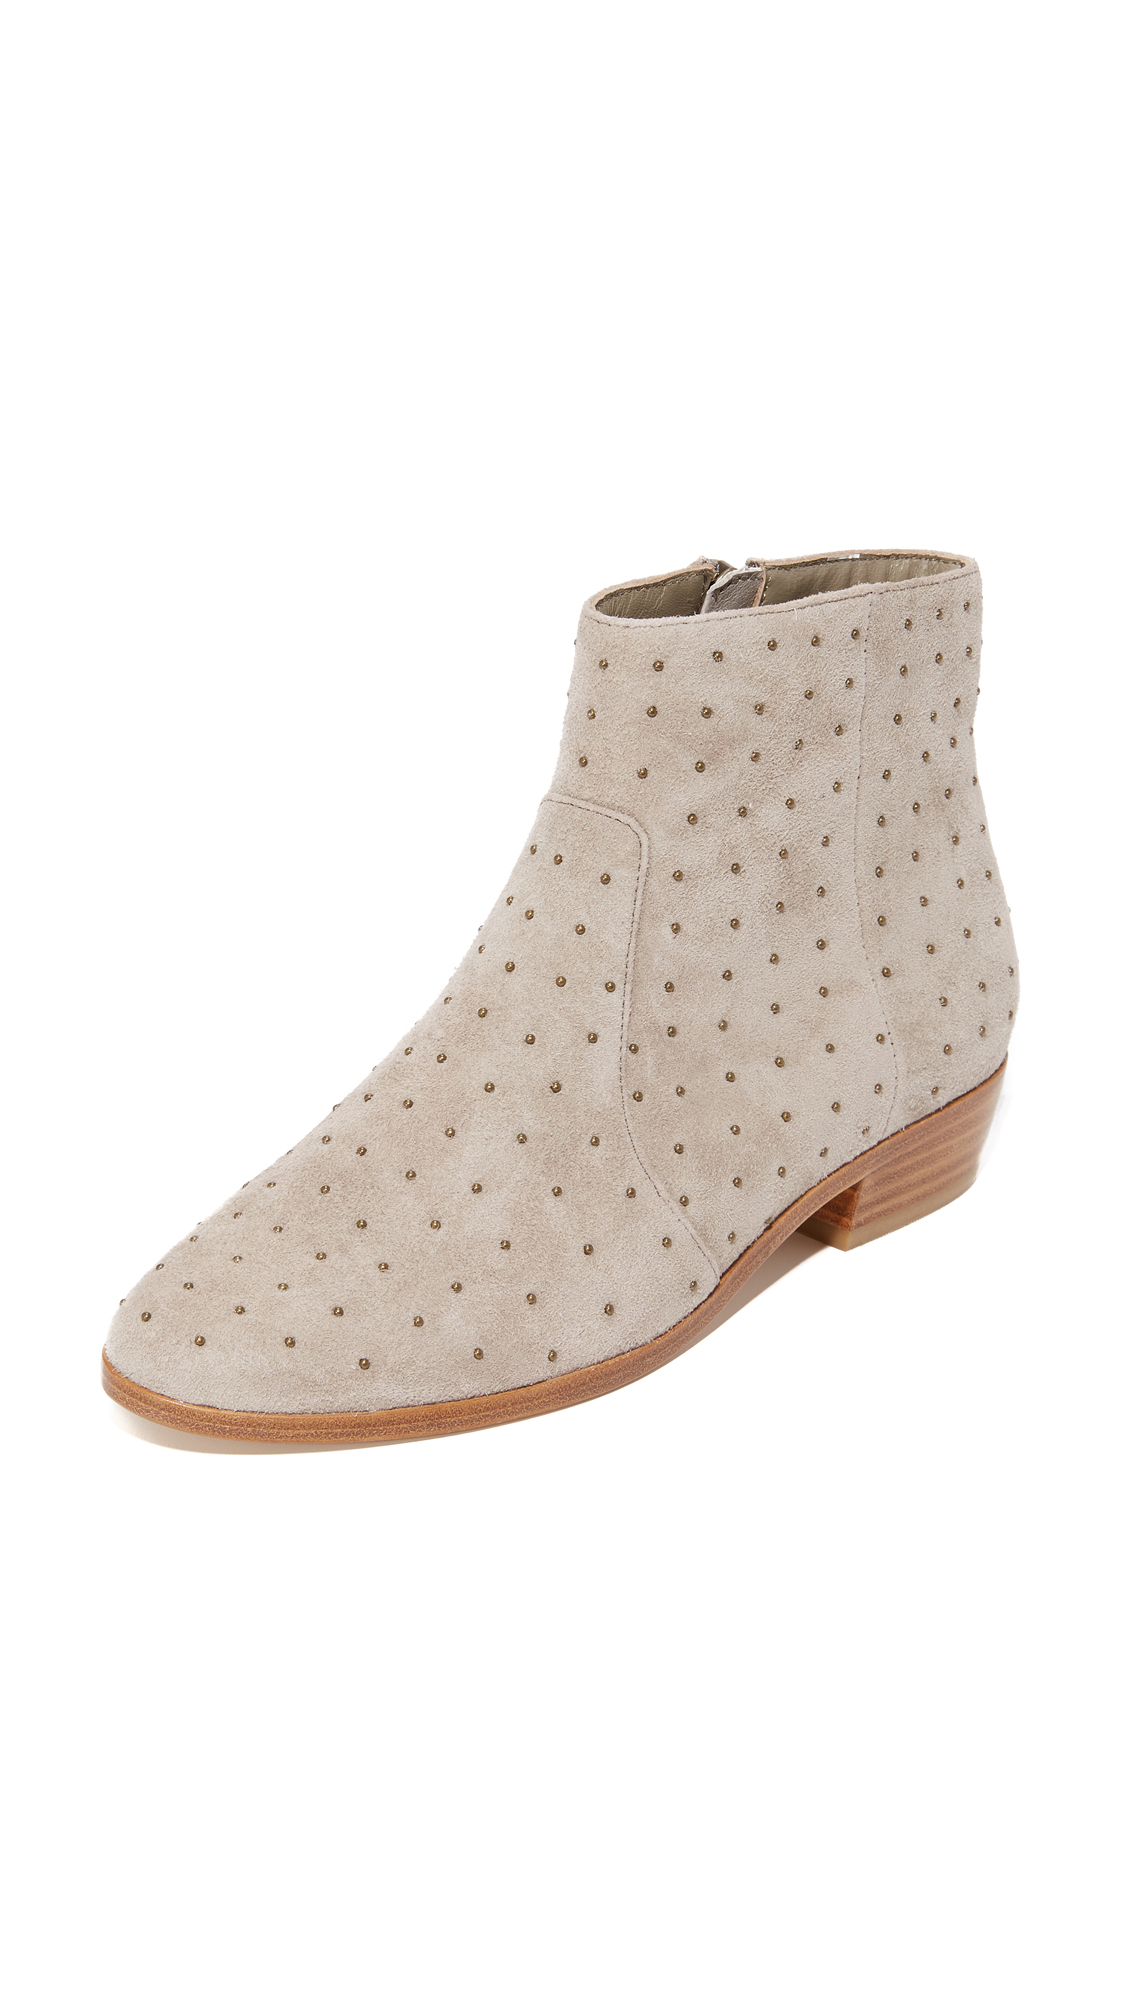 Joie Lacole Studded Booties - Gravel